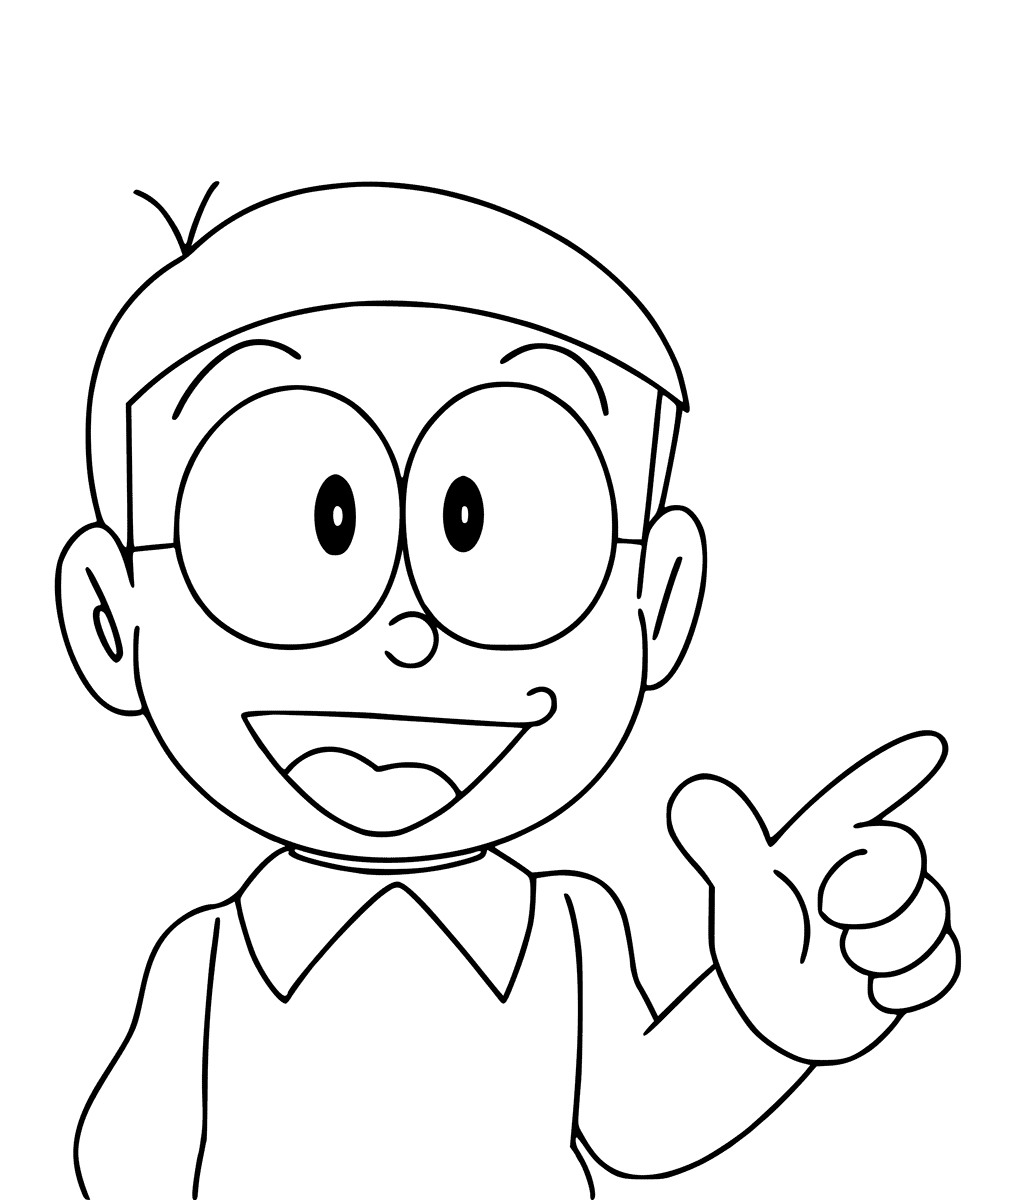 Doraemon Coloring Pages Best Coloring Pages For Kids Disney Drawings Sketches Cute Cartoon Drawings Easy Cartoon Drawings